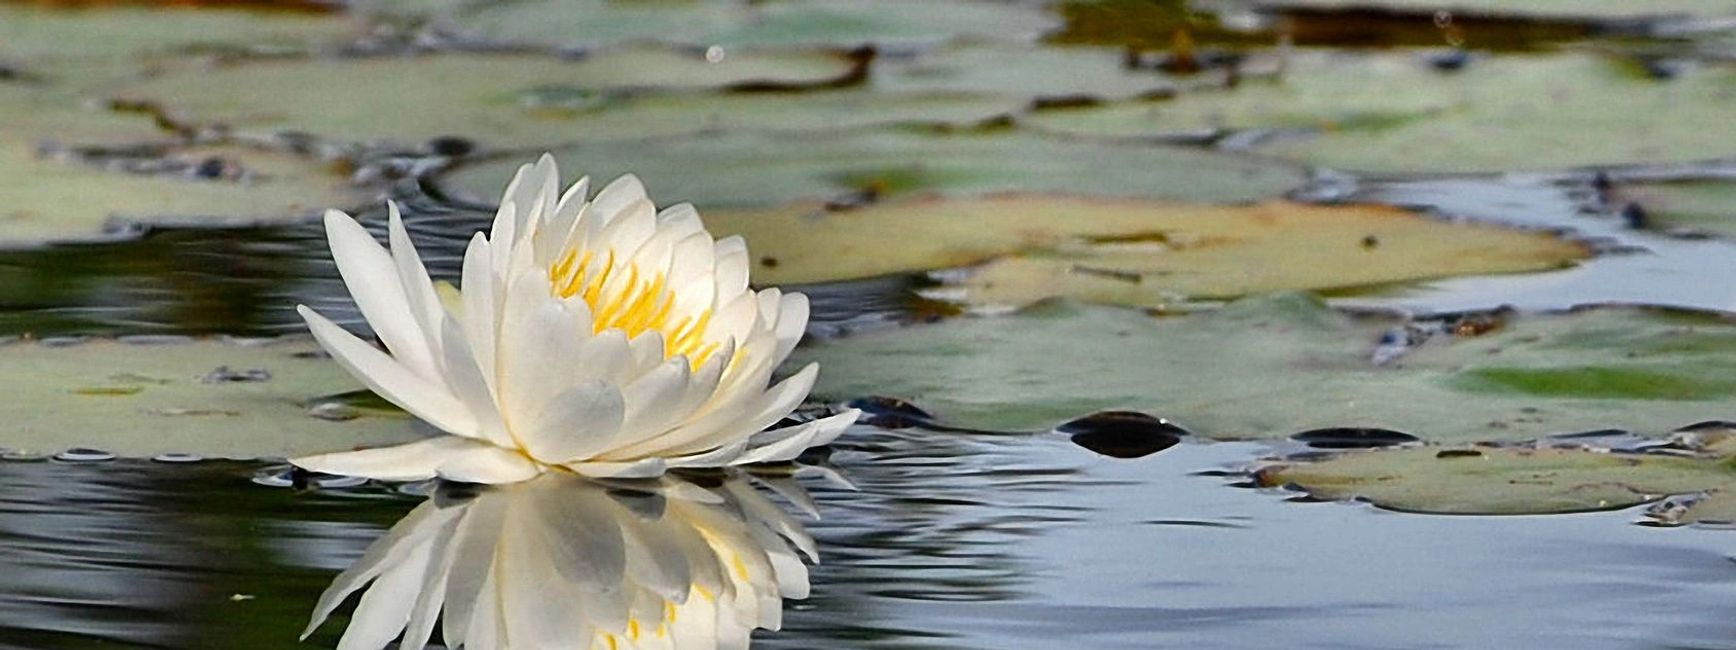 A white lily floats on still water with lily pads int he background.